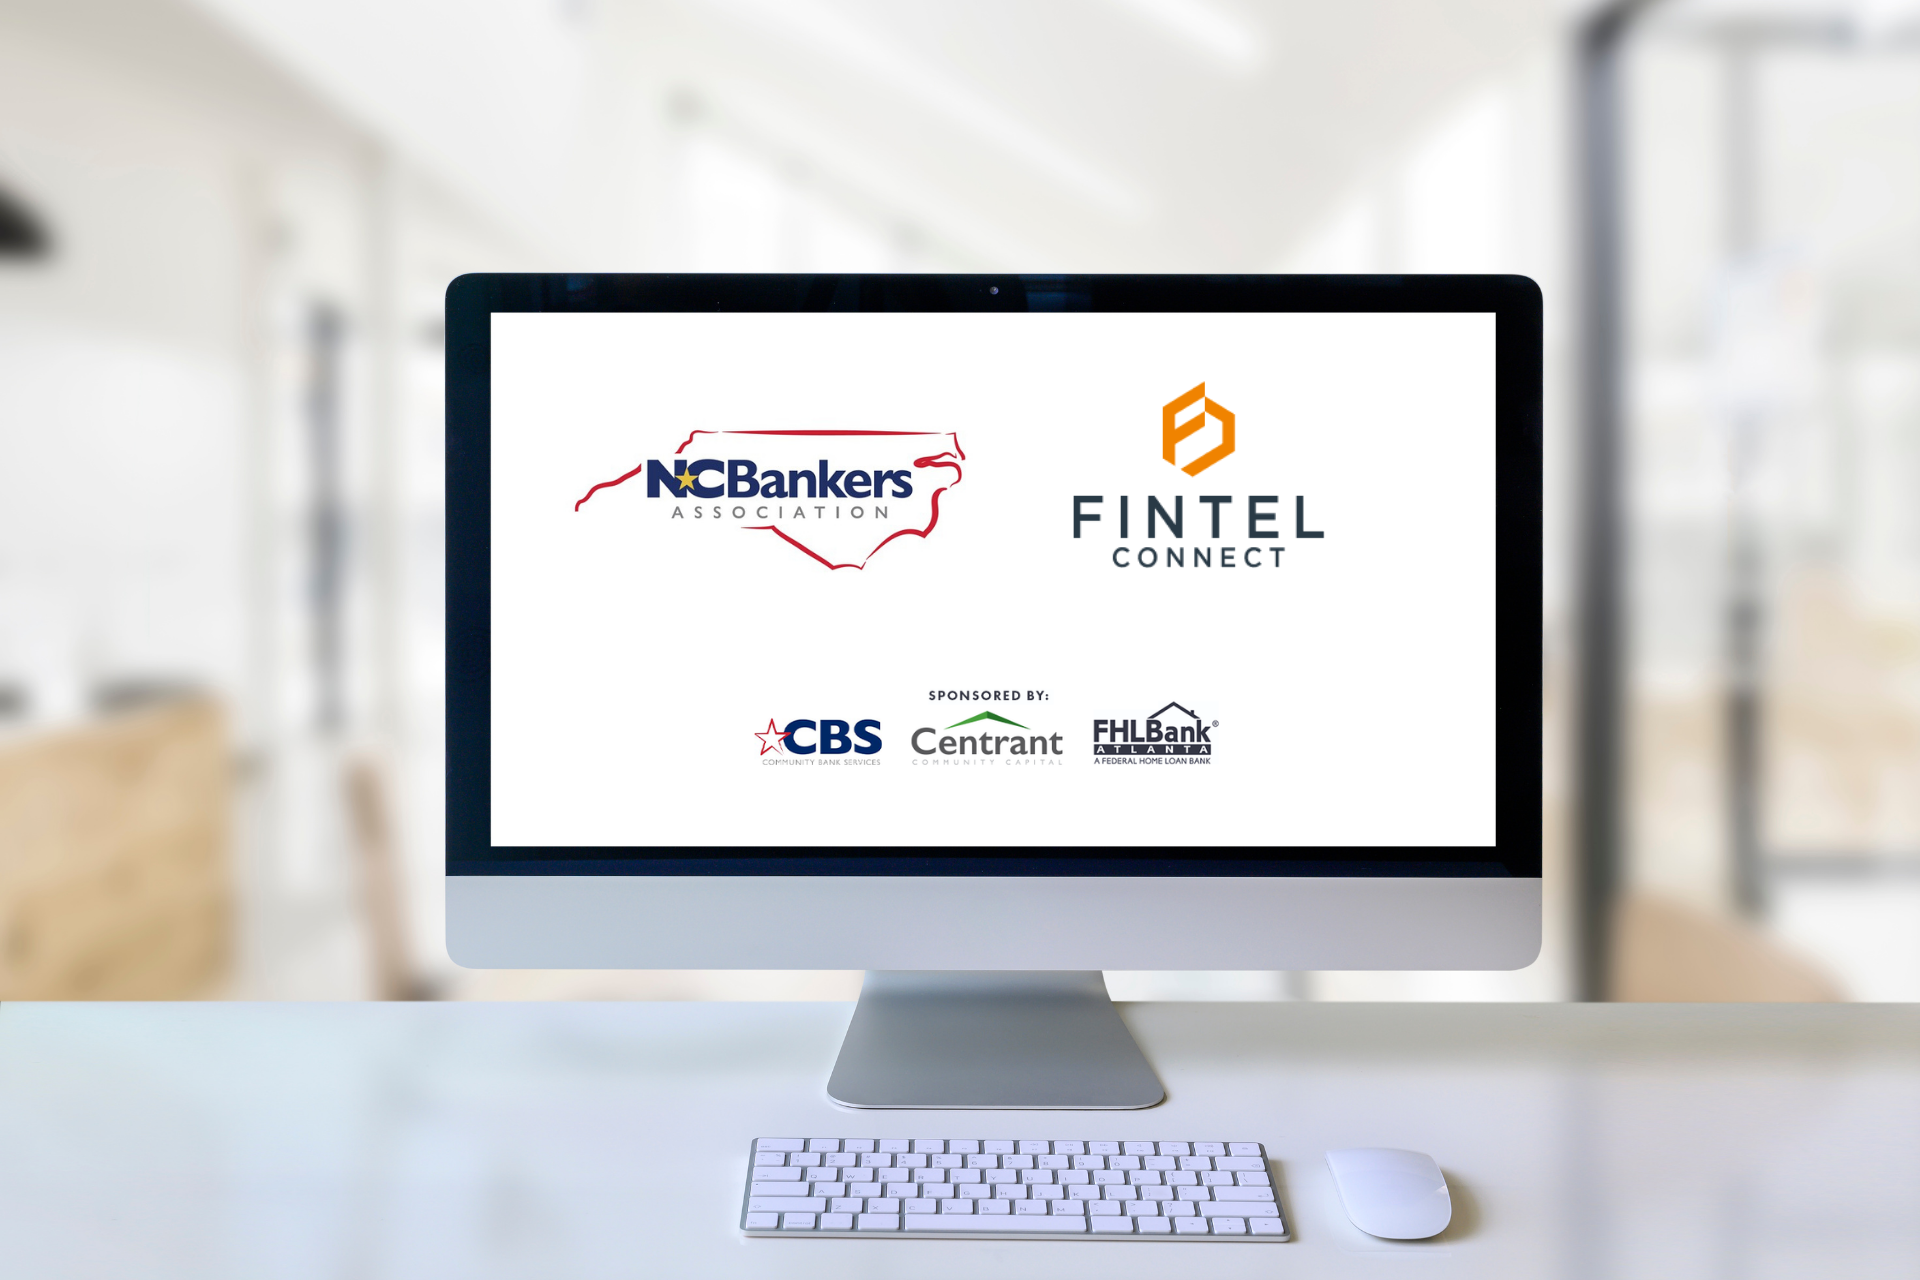 Fintel Connect to Lead Virtual Marketing Seminar Hosted by the North Carolina Bankers Association